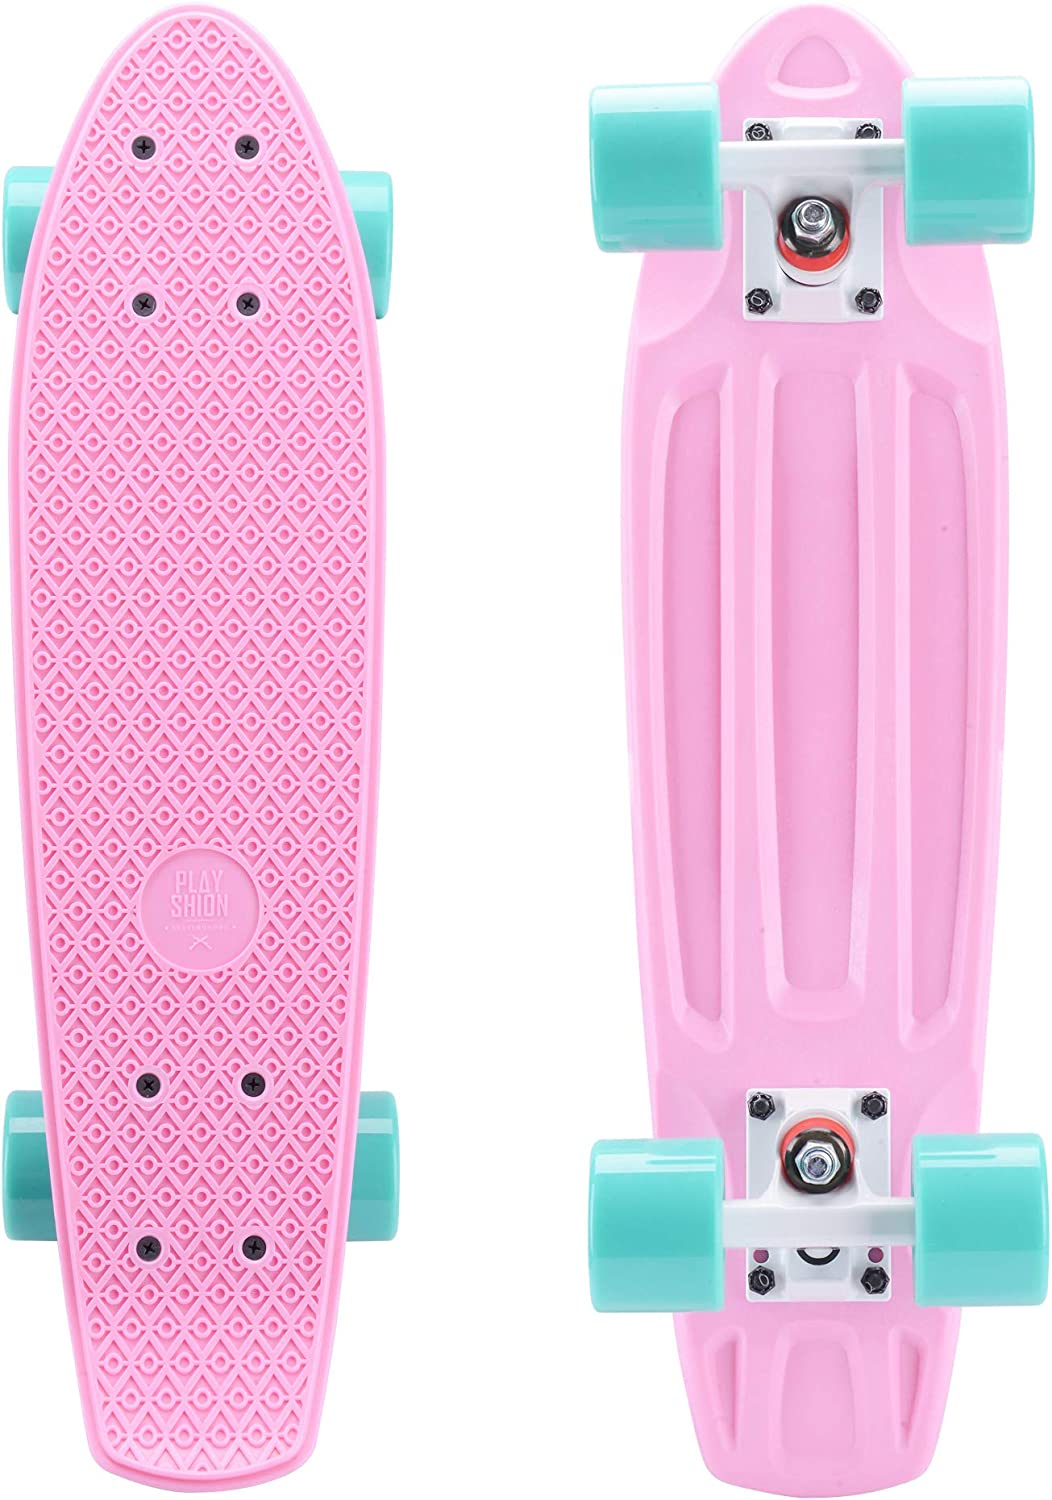 Playshion Complete 22 Inch Mini Cruiser Skateboard for Beginner with Sturdy Deck / US